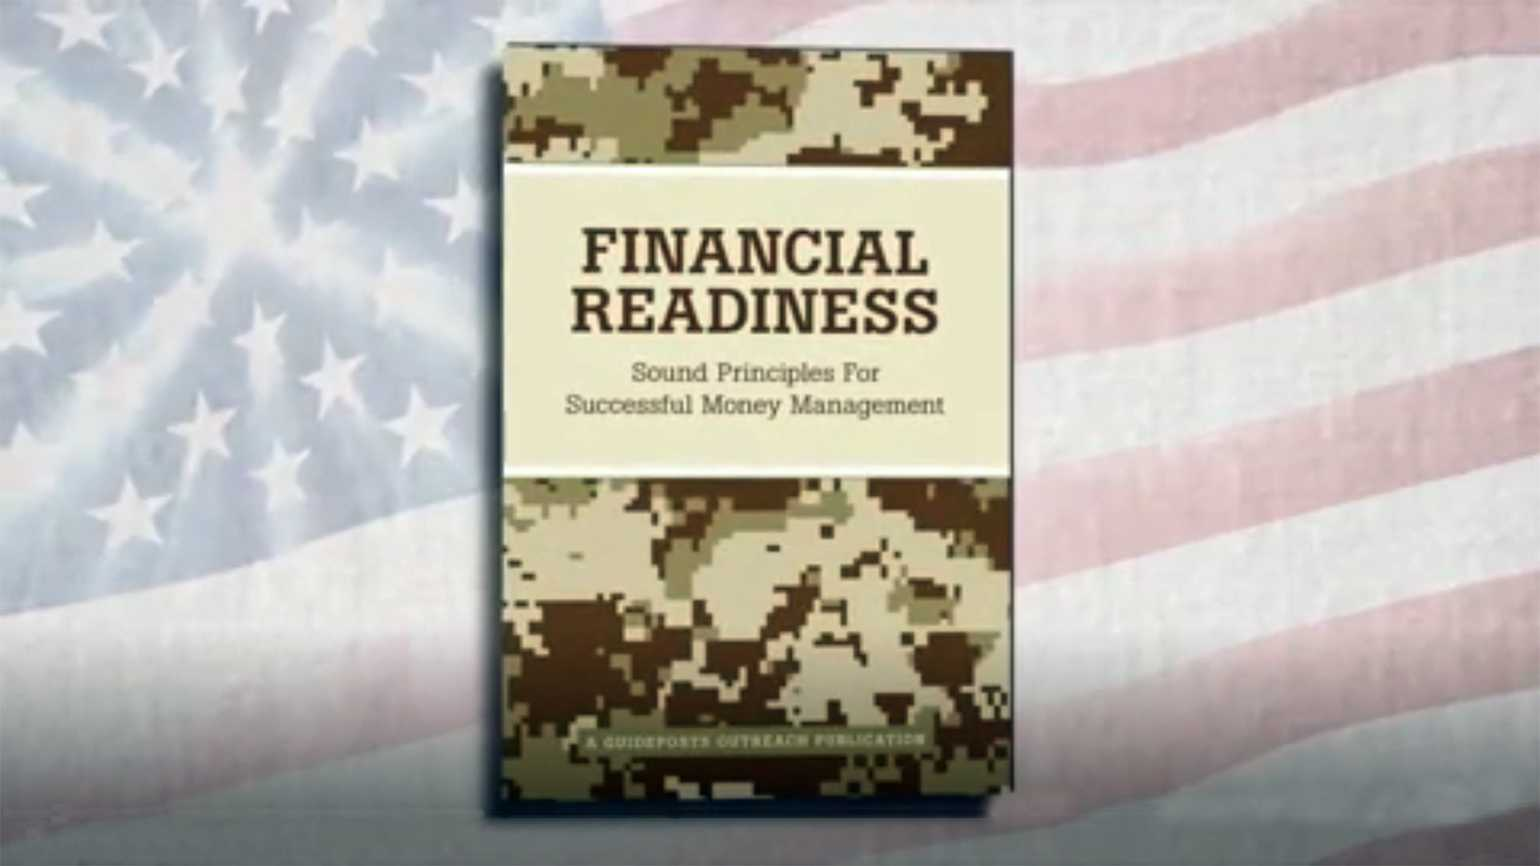 Guideposts' Financial Readiness booklet